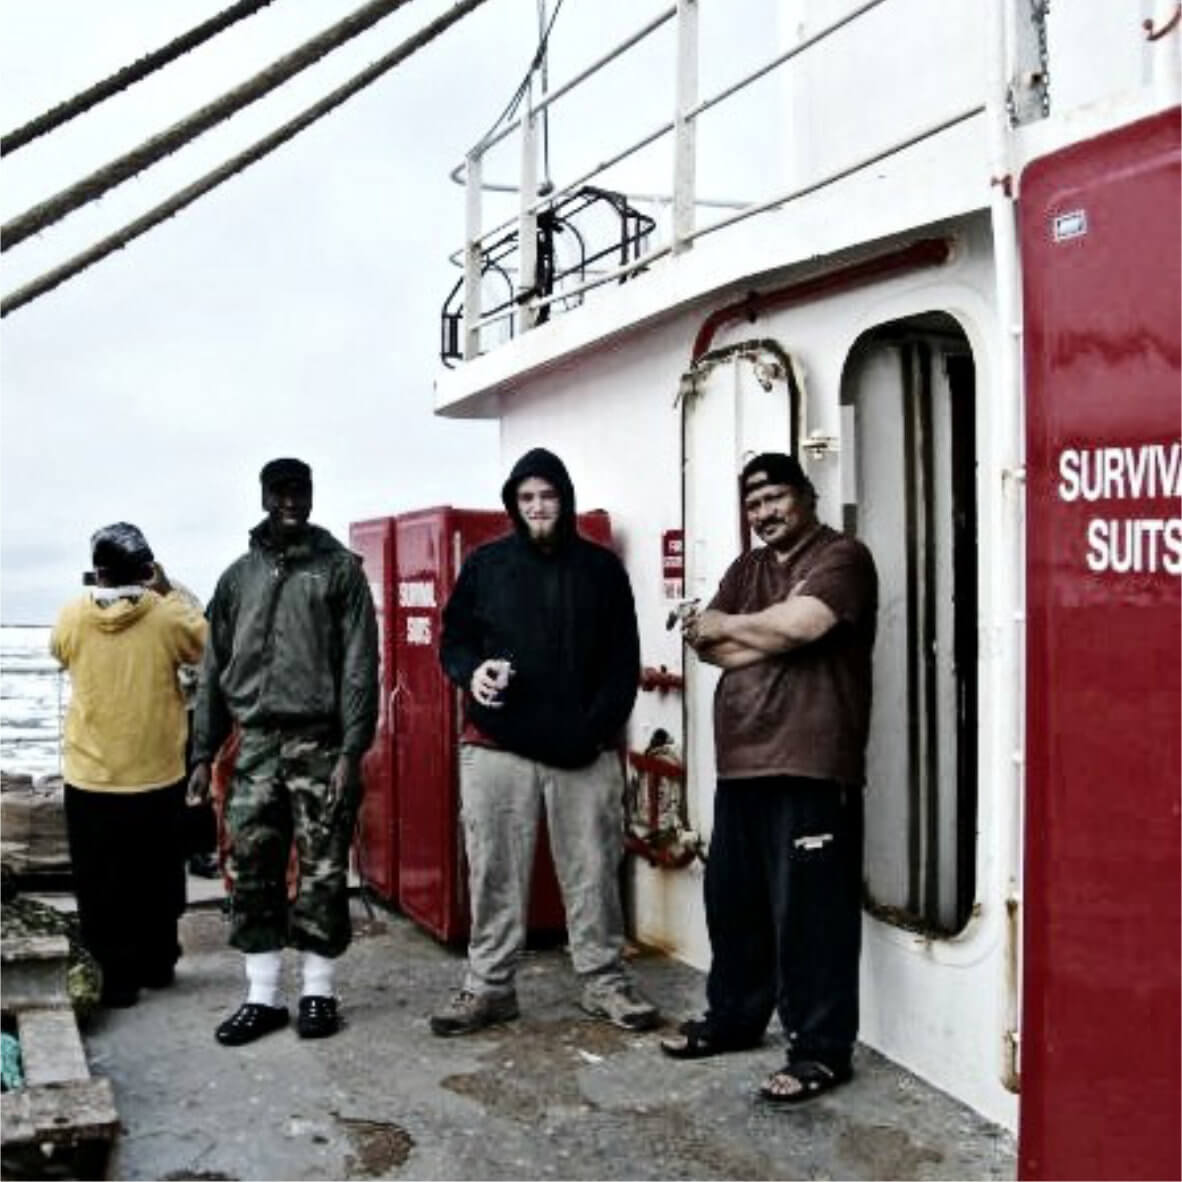 crew on a fishing boat